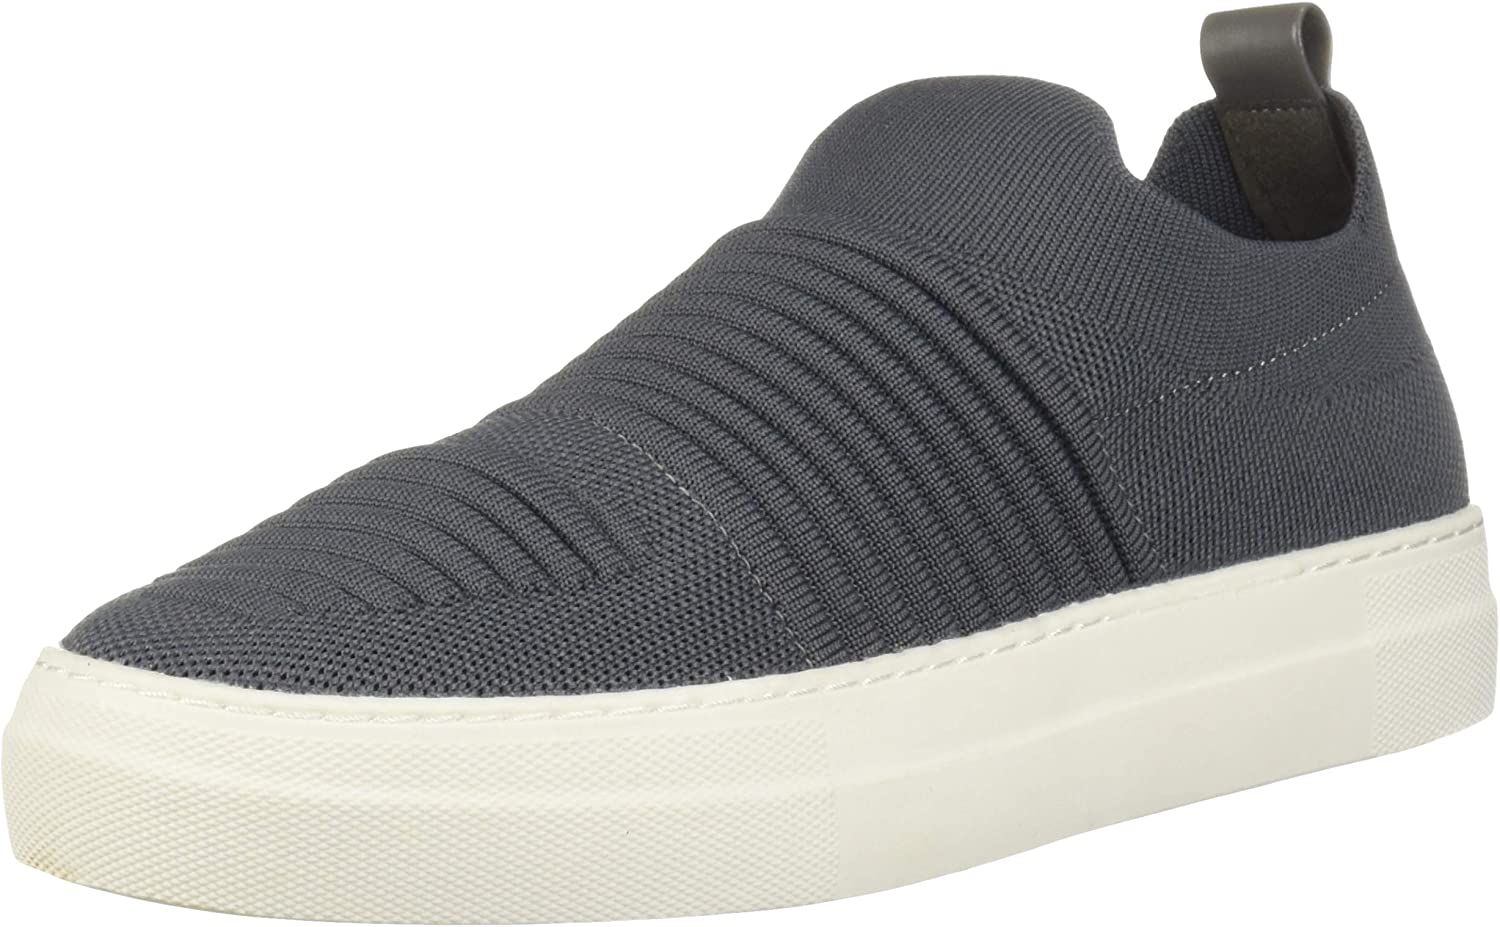 Madden girl Womens Brytney Sneaker